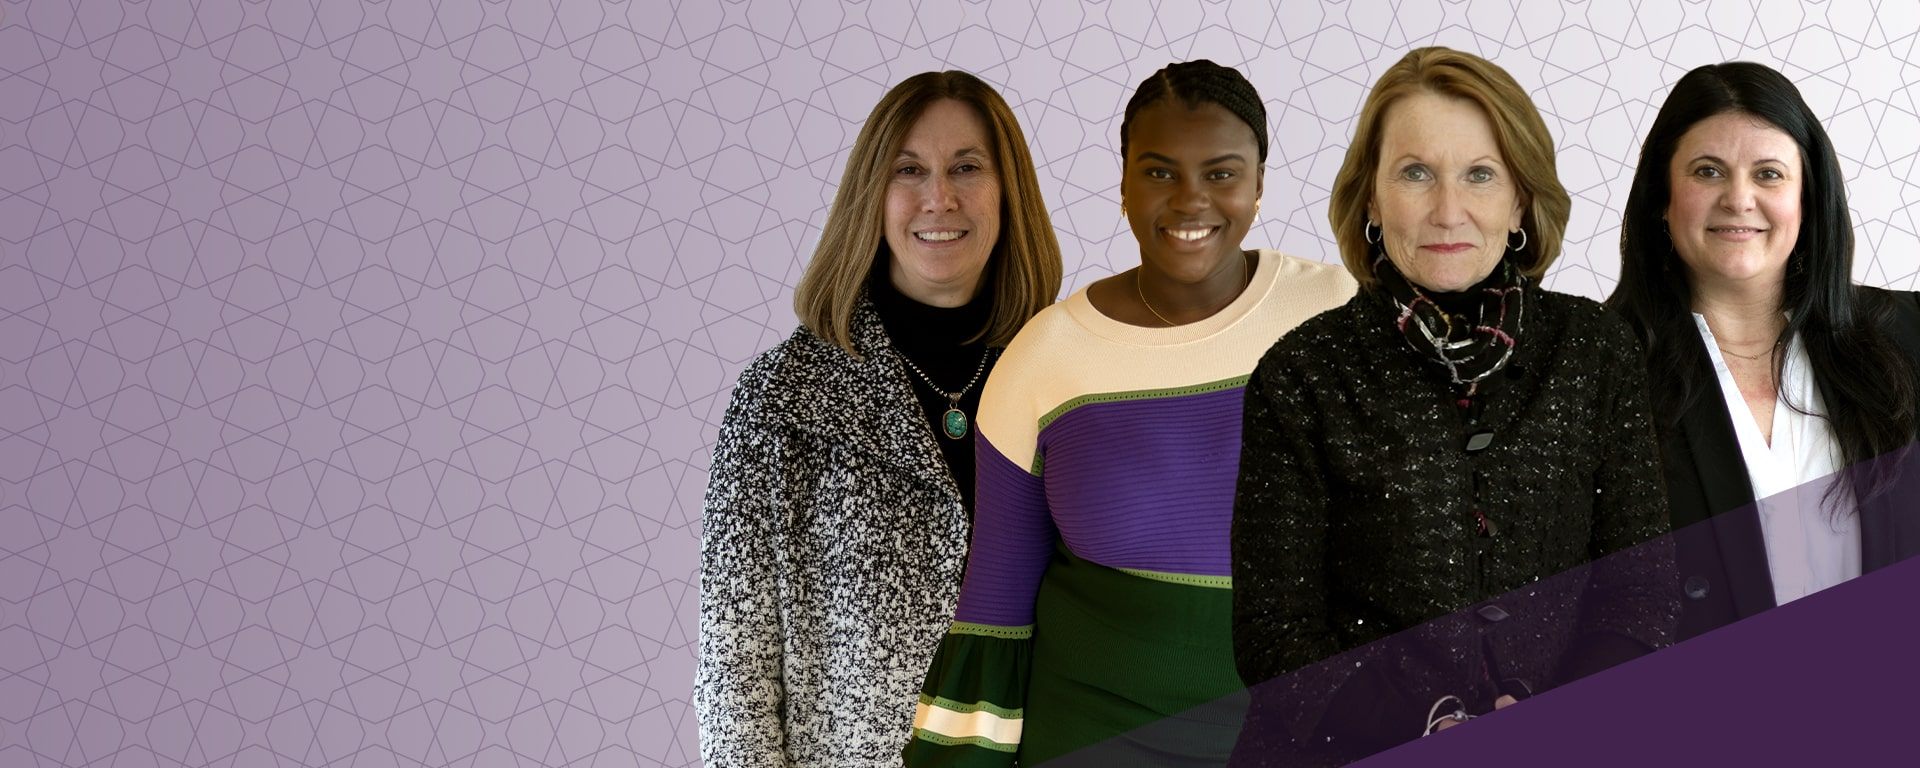 Composite photo featuring: Karen Heinz, Isioma Nwabuzor, Mary Ellen Stanek and Arias